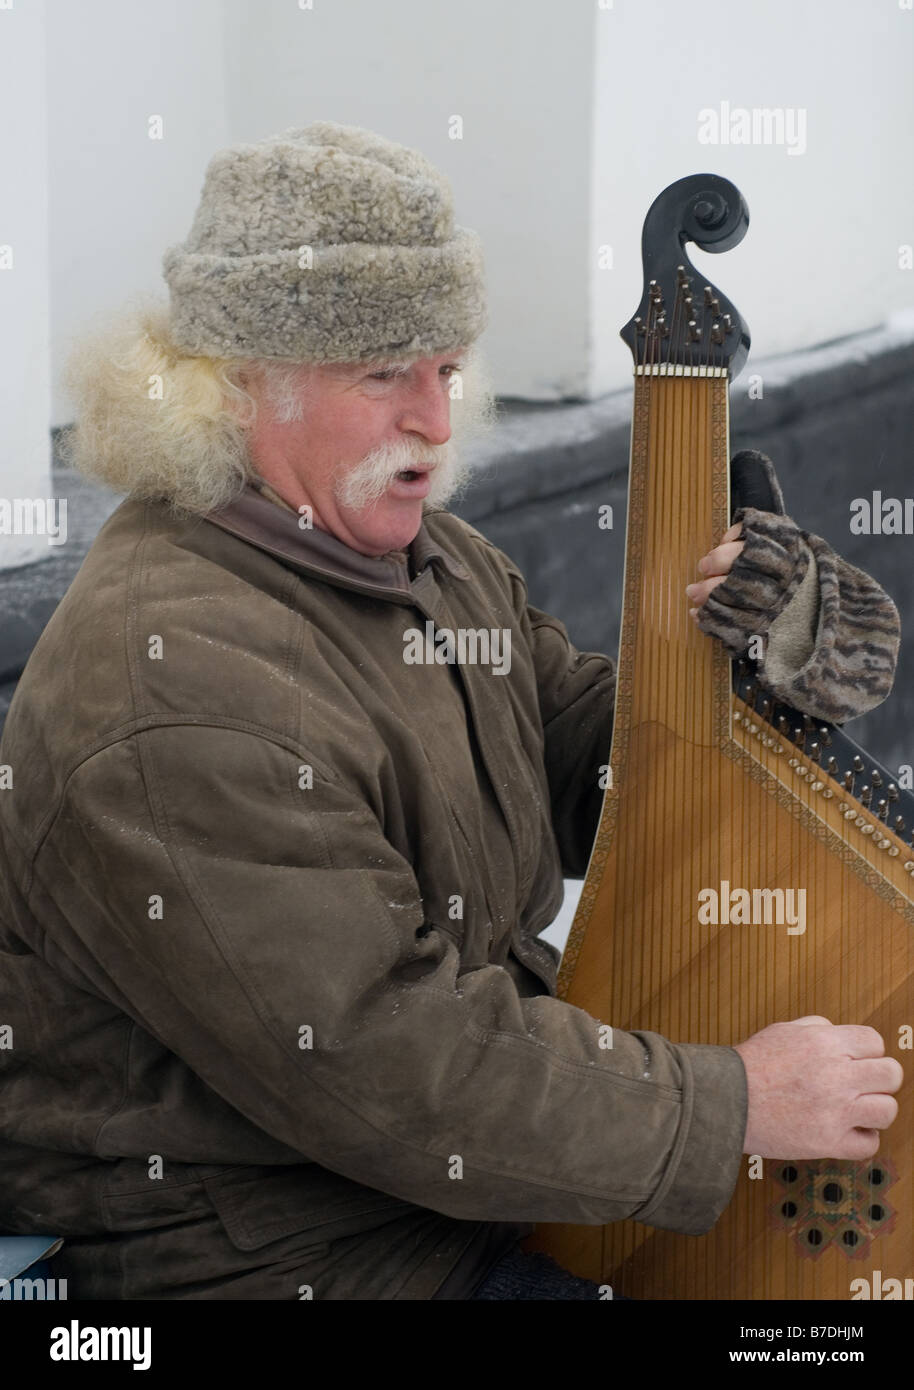 Musician playing the Bandura a string instrument unique to the Ukraine - Stock Image